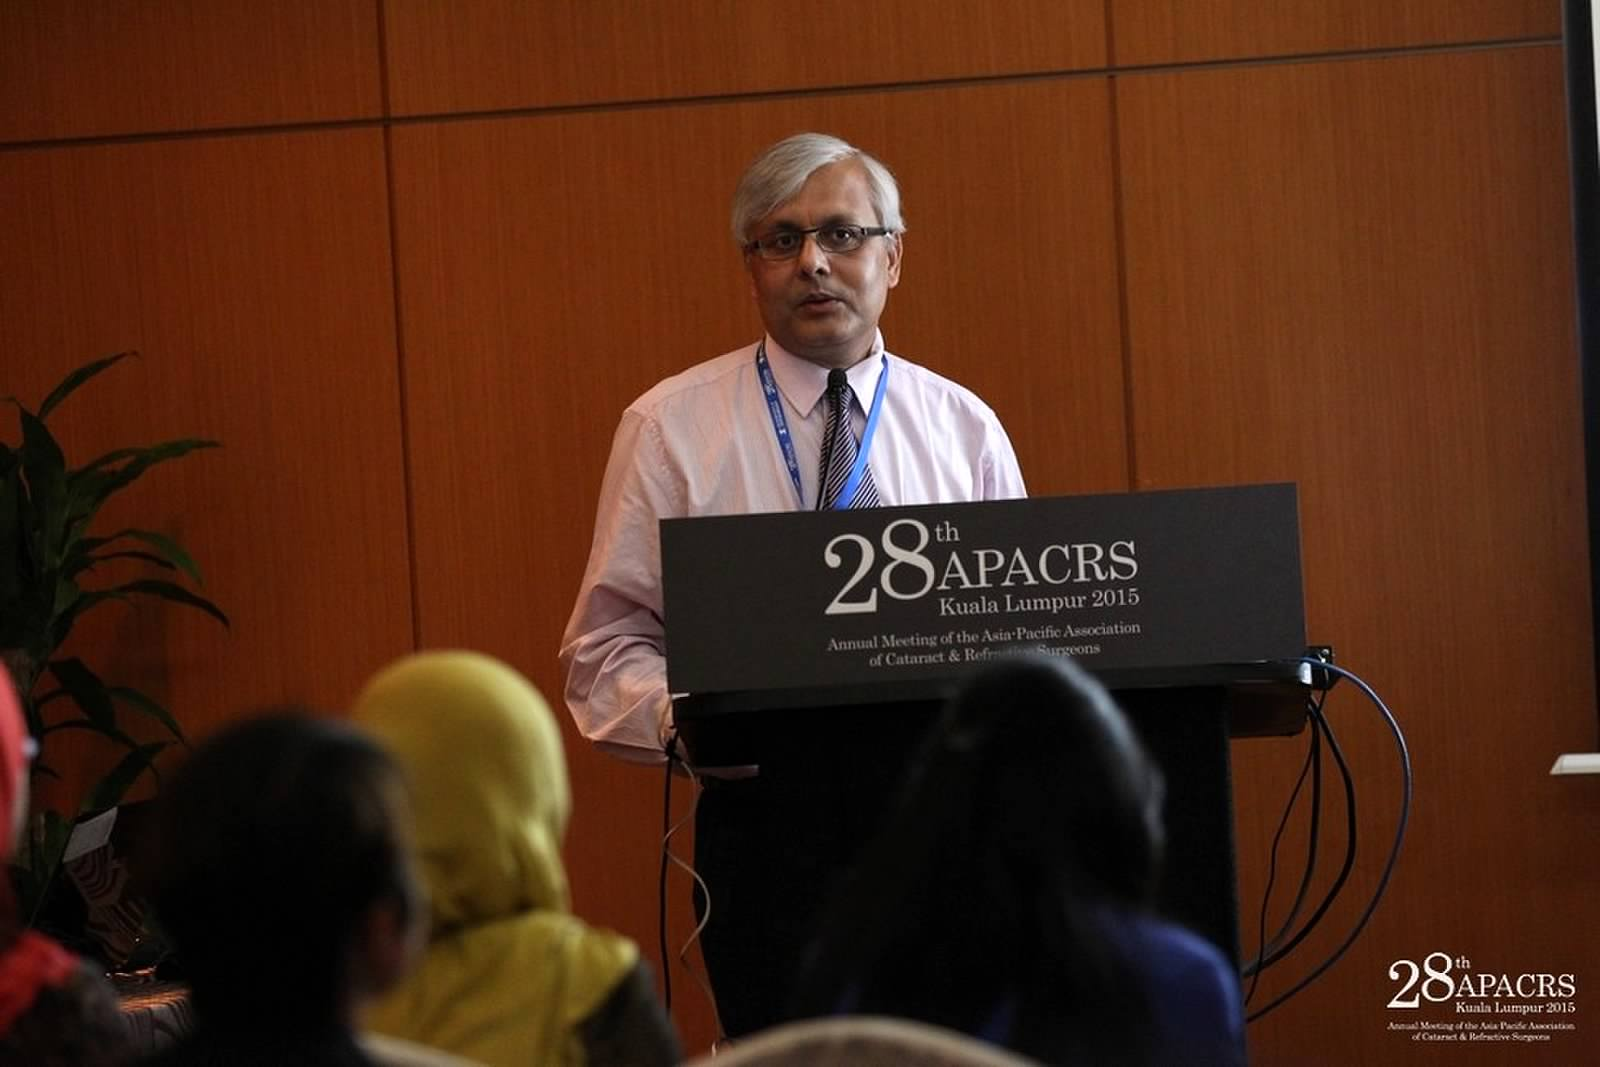 Dr Somdutt Prasad speaking at the APACRS conference in Kuala Lumpur